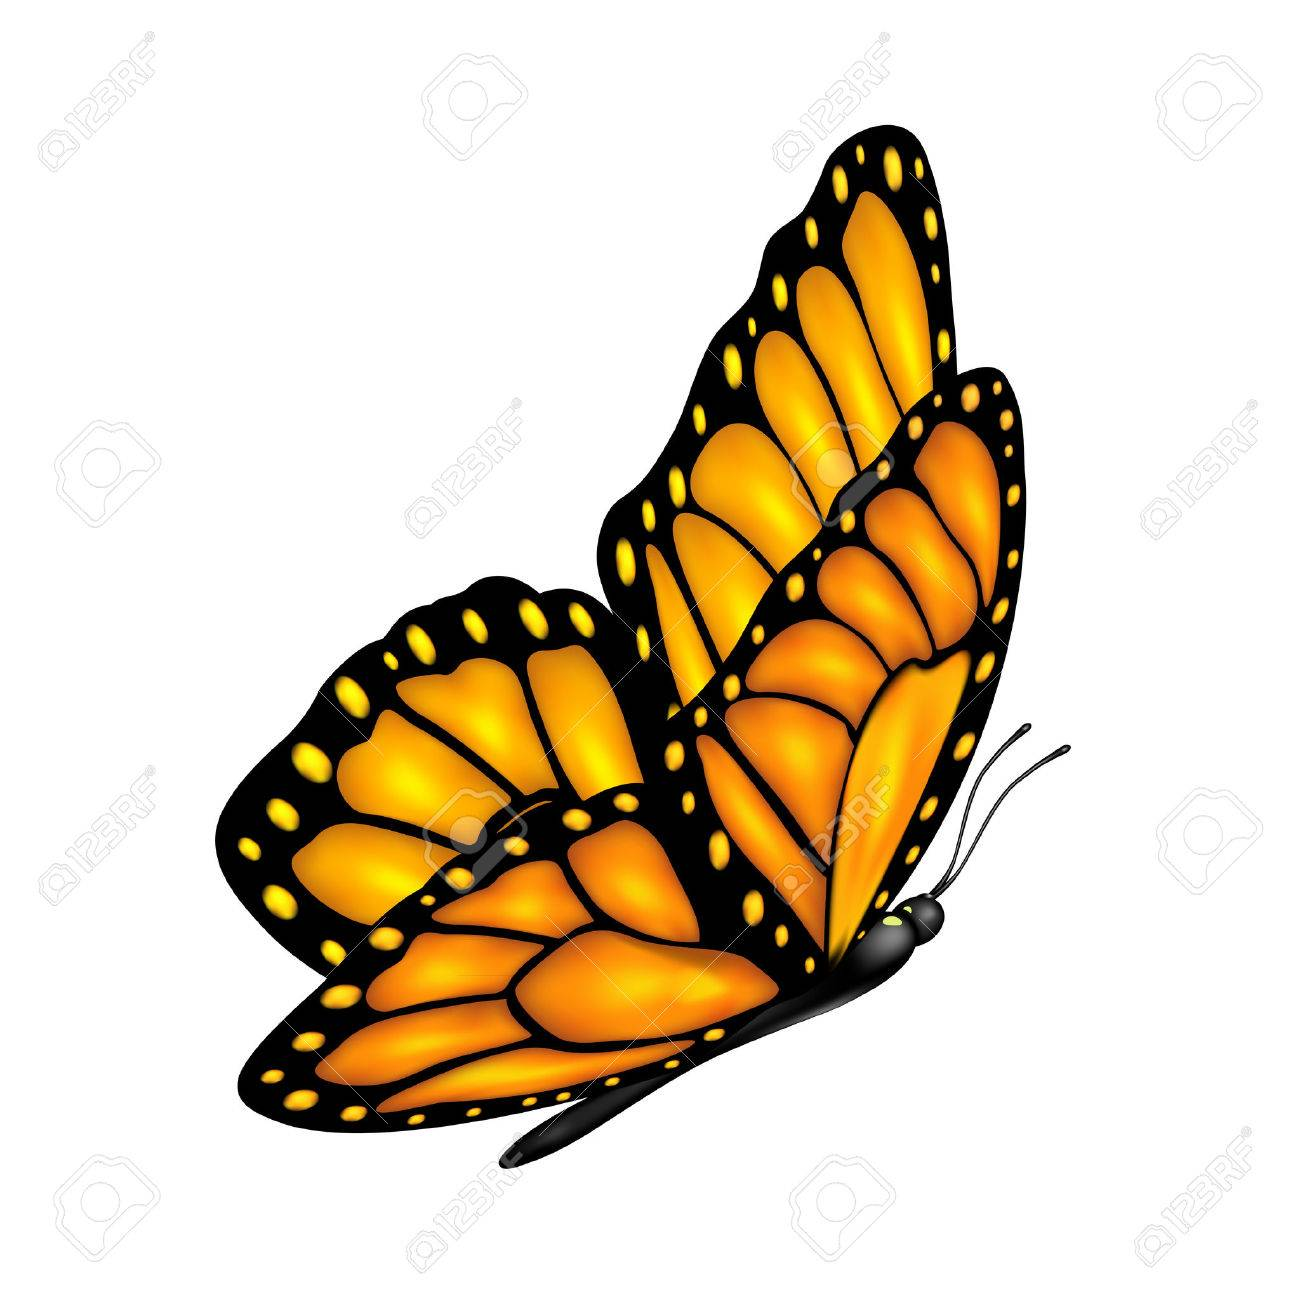 Flying orange butterfly and shadow isolated on a white background, illustration - 26820617